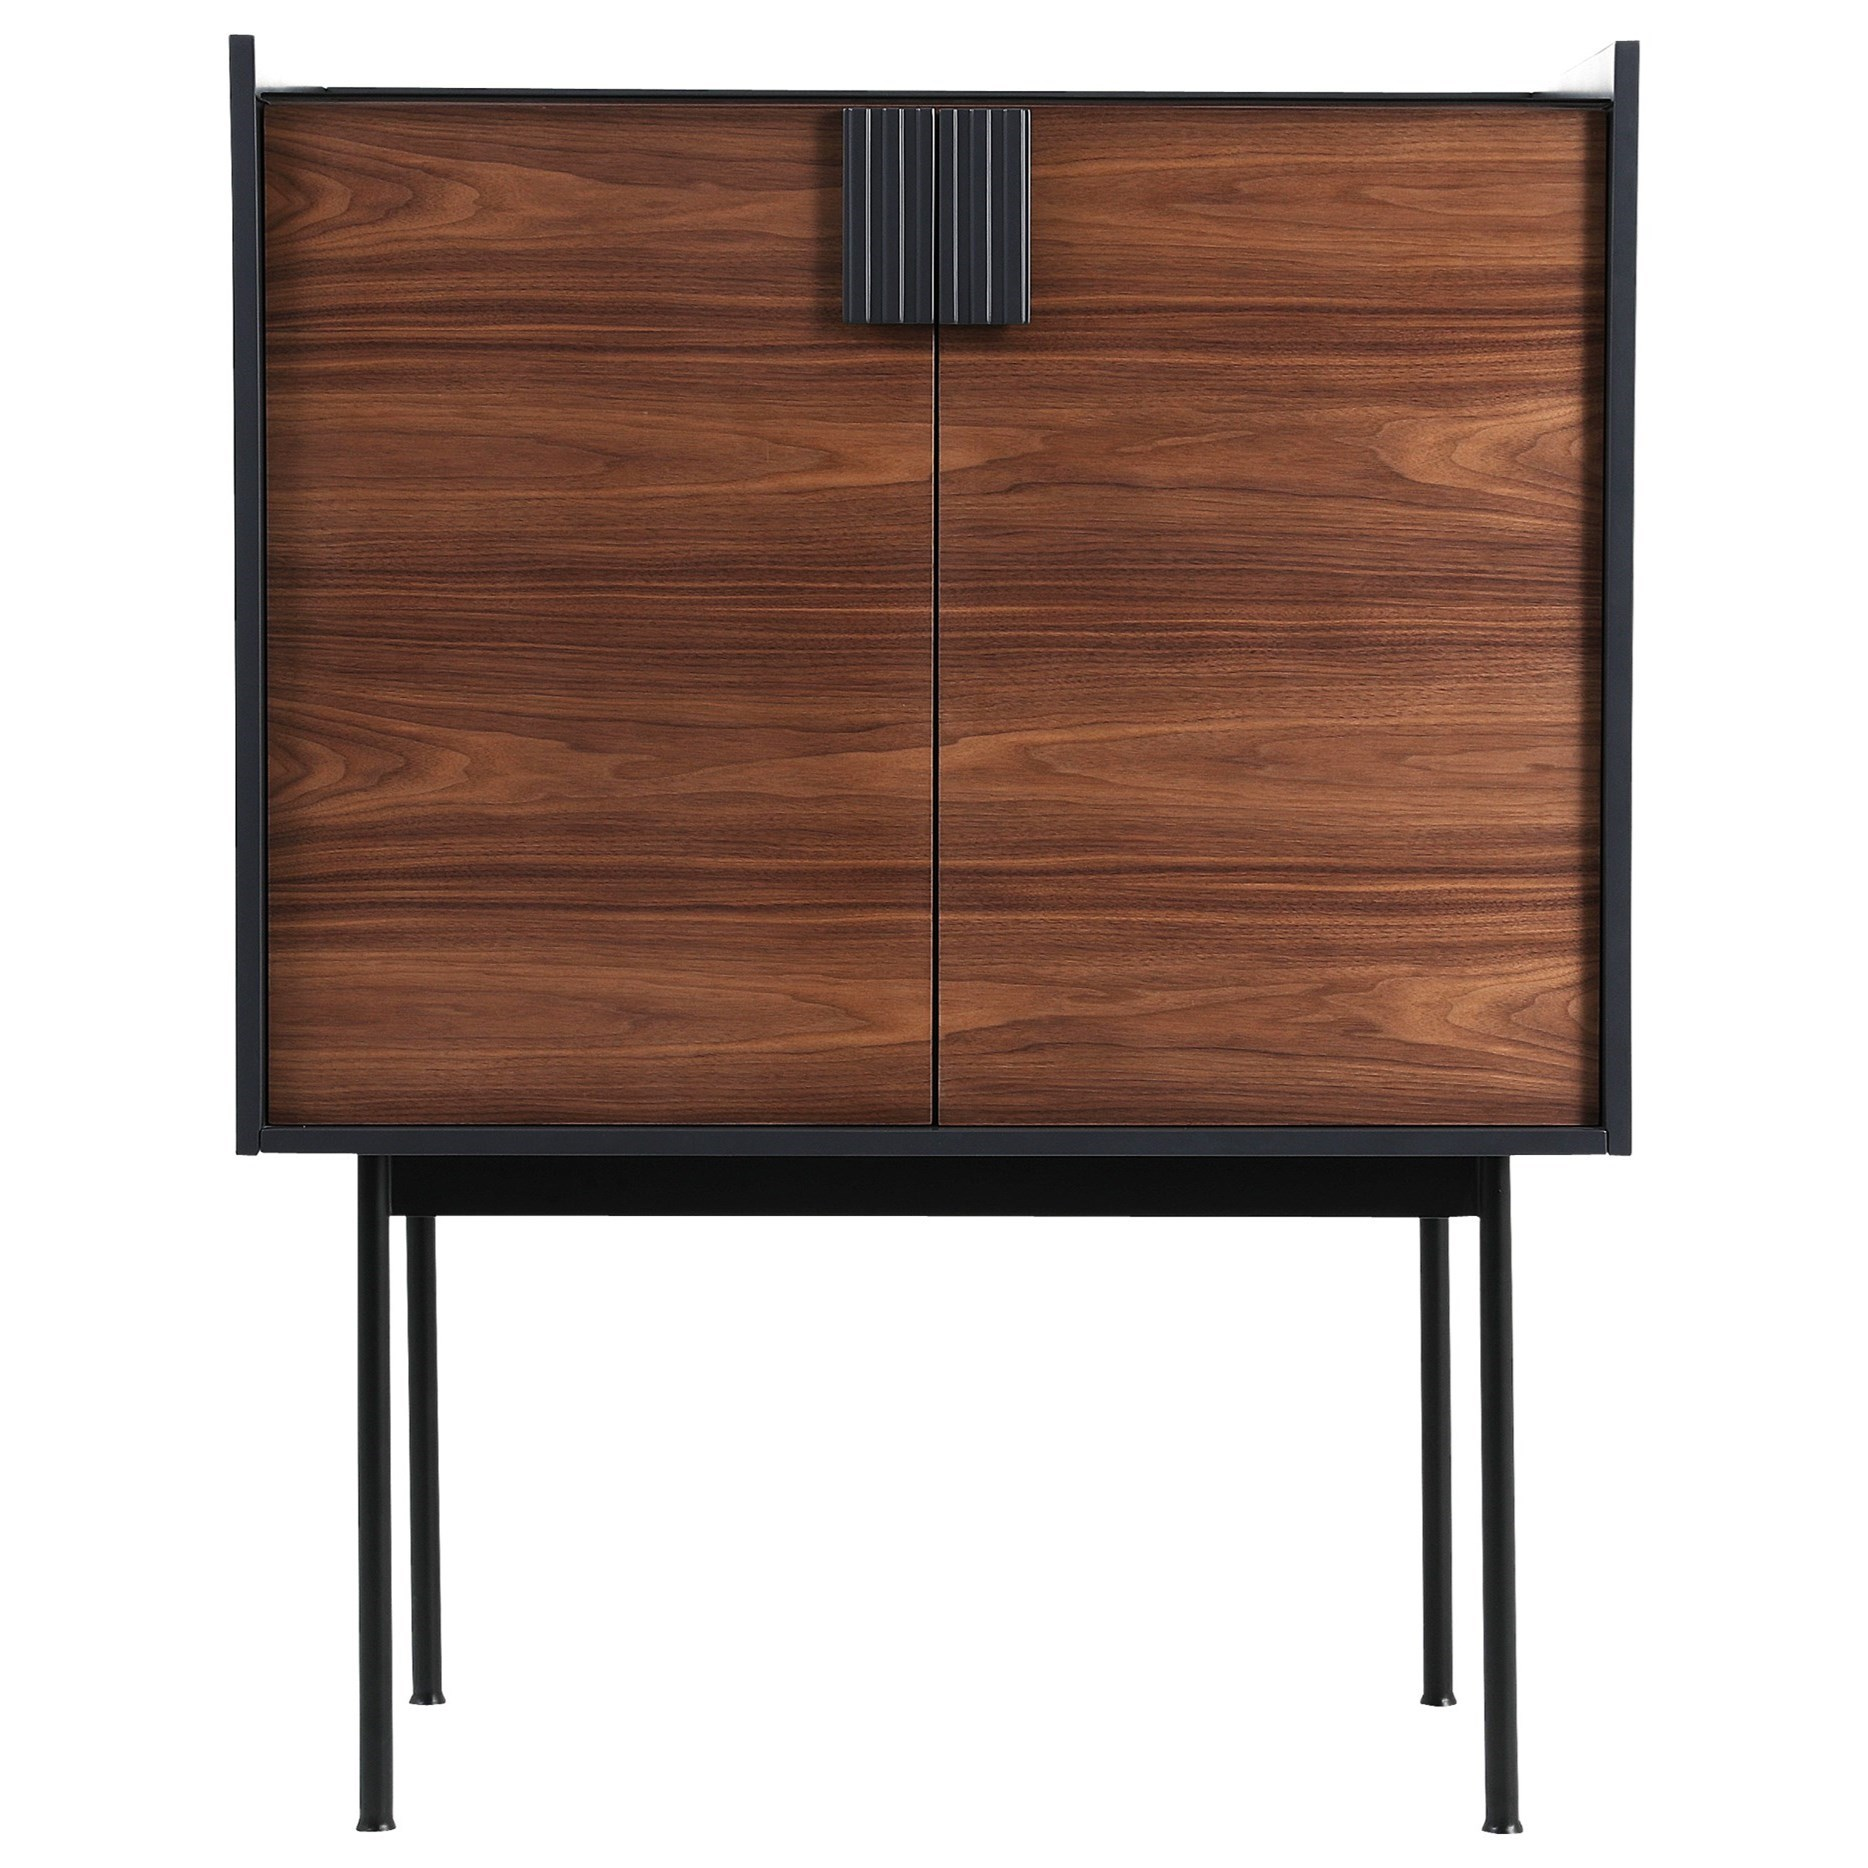 Yasmin Bar Cabinet by Moe's Home Collection at Stoney Creek Furniture